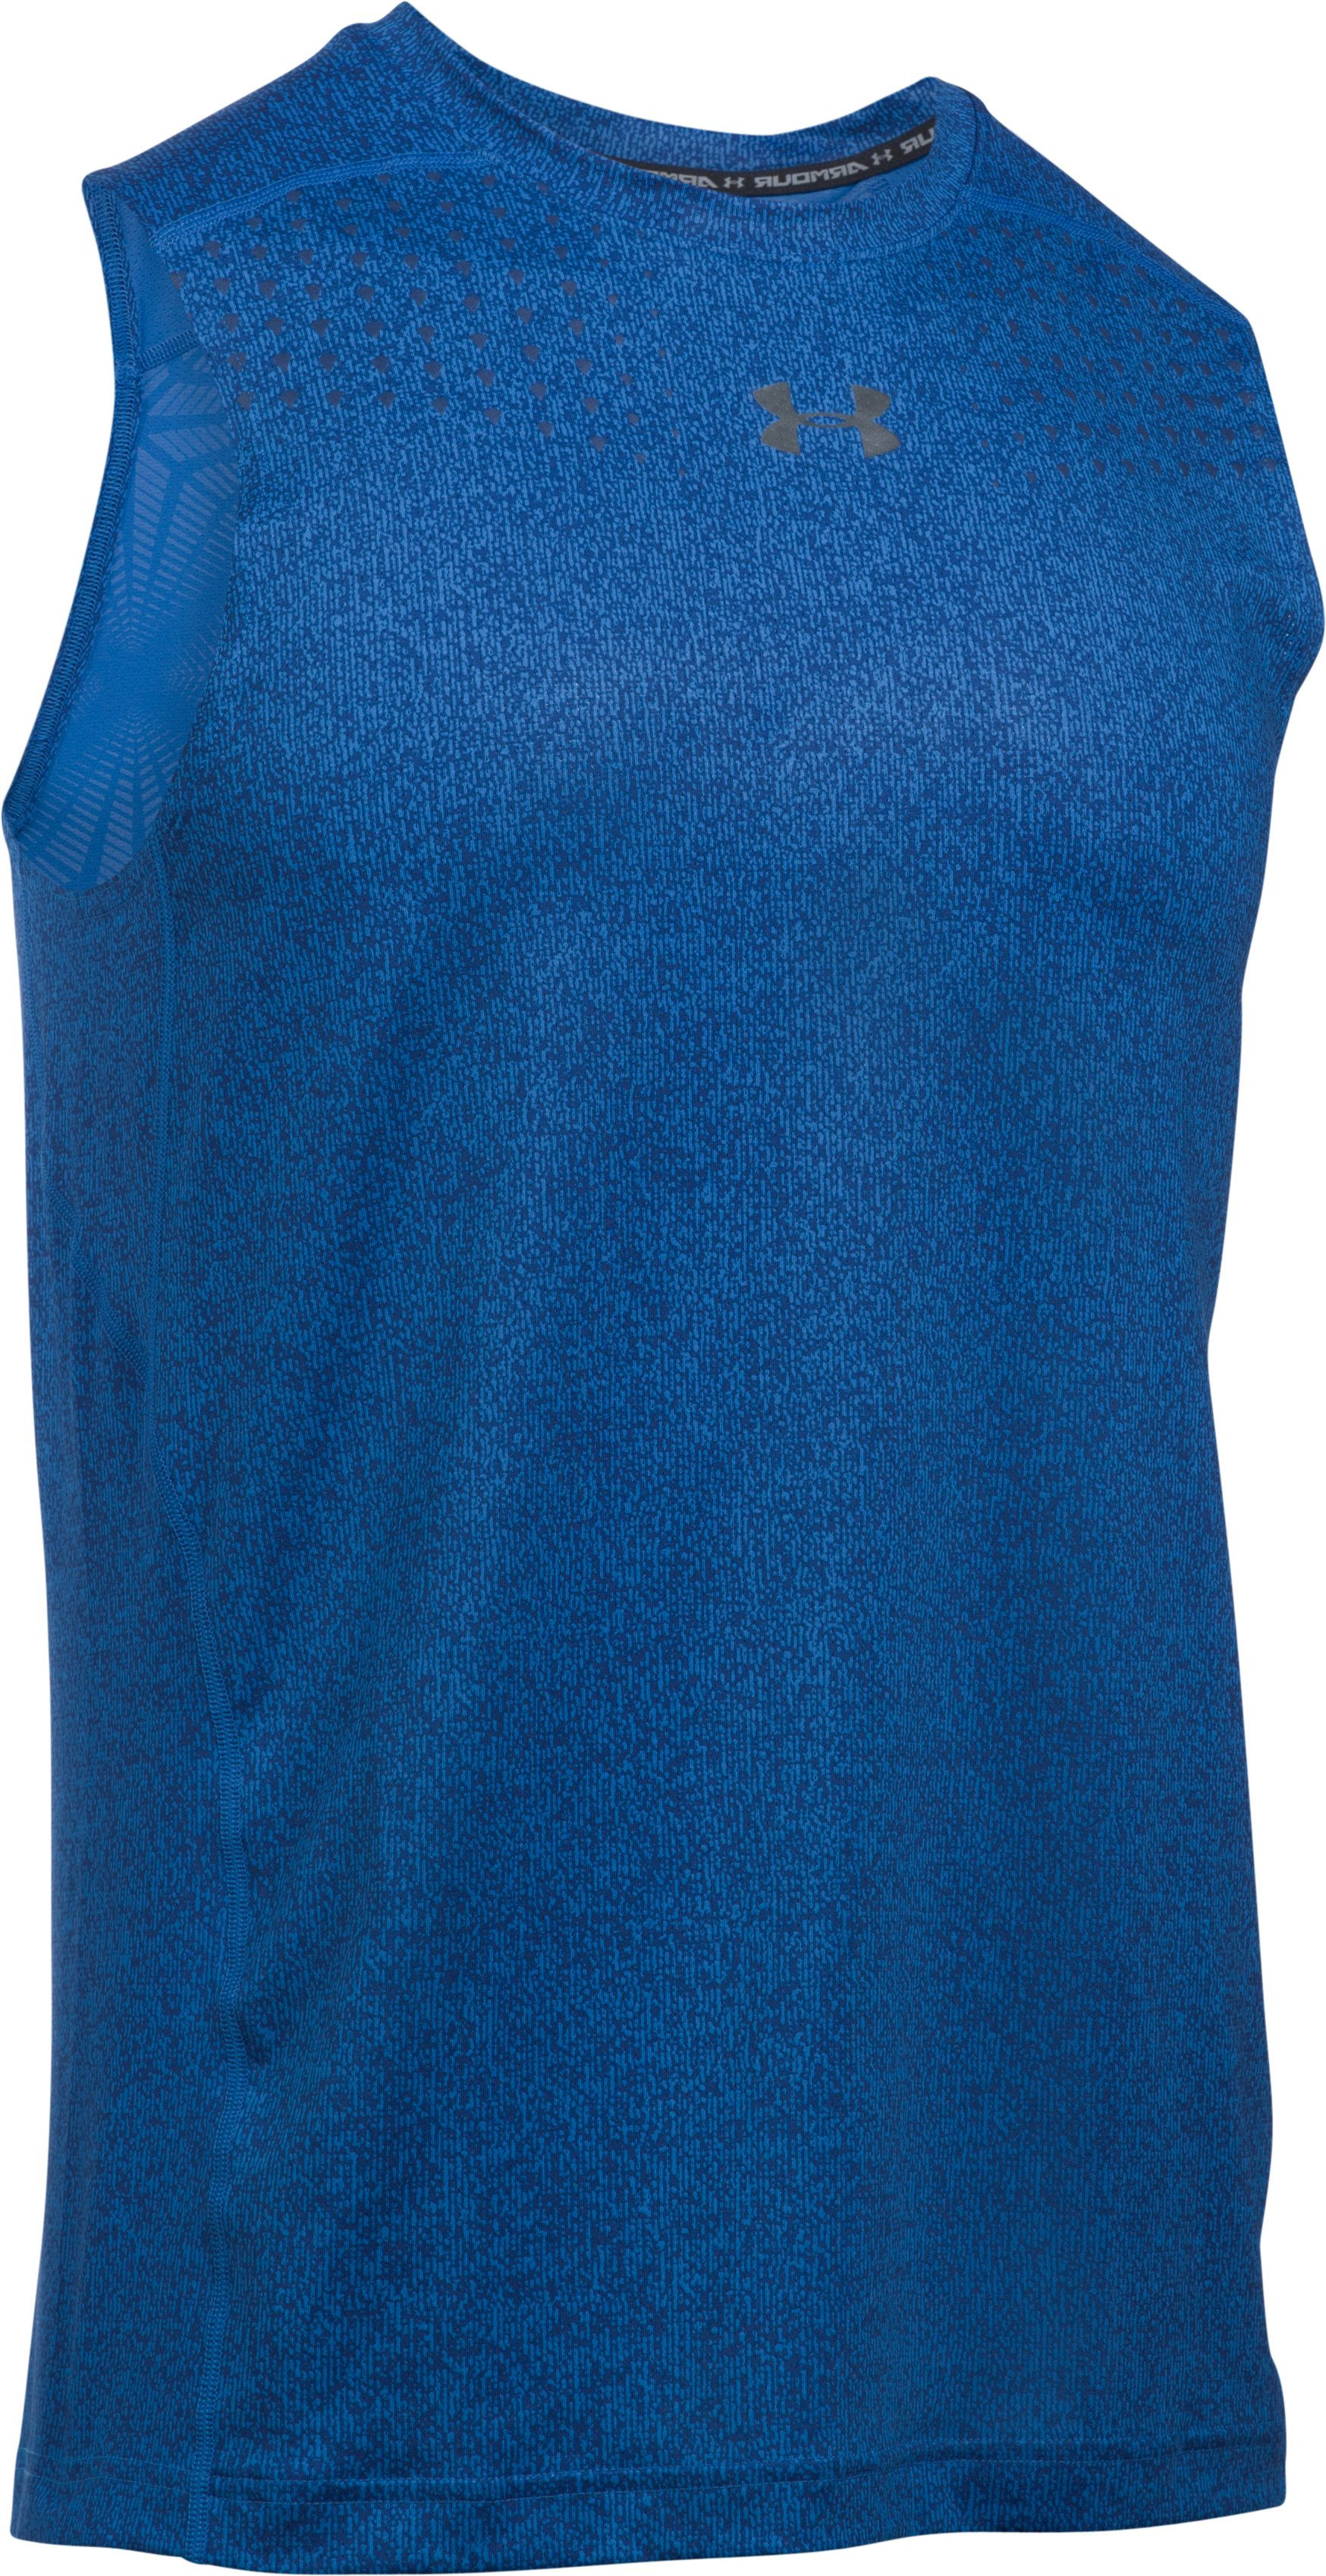 Men's HeatGear® CoolSwitch Sleeveless, BLUE MARKER, undefined